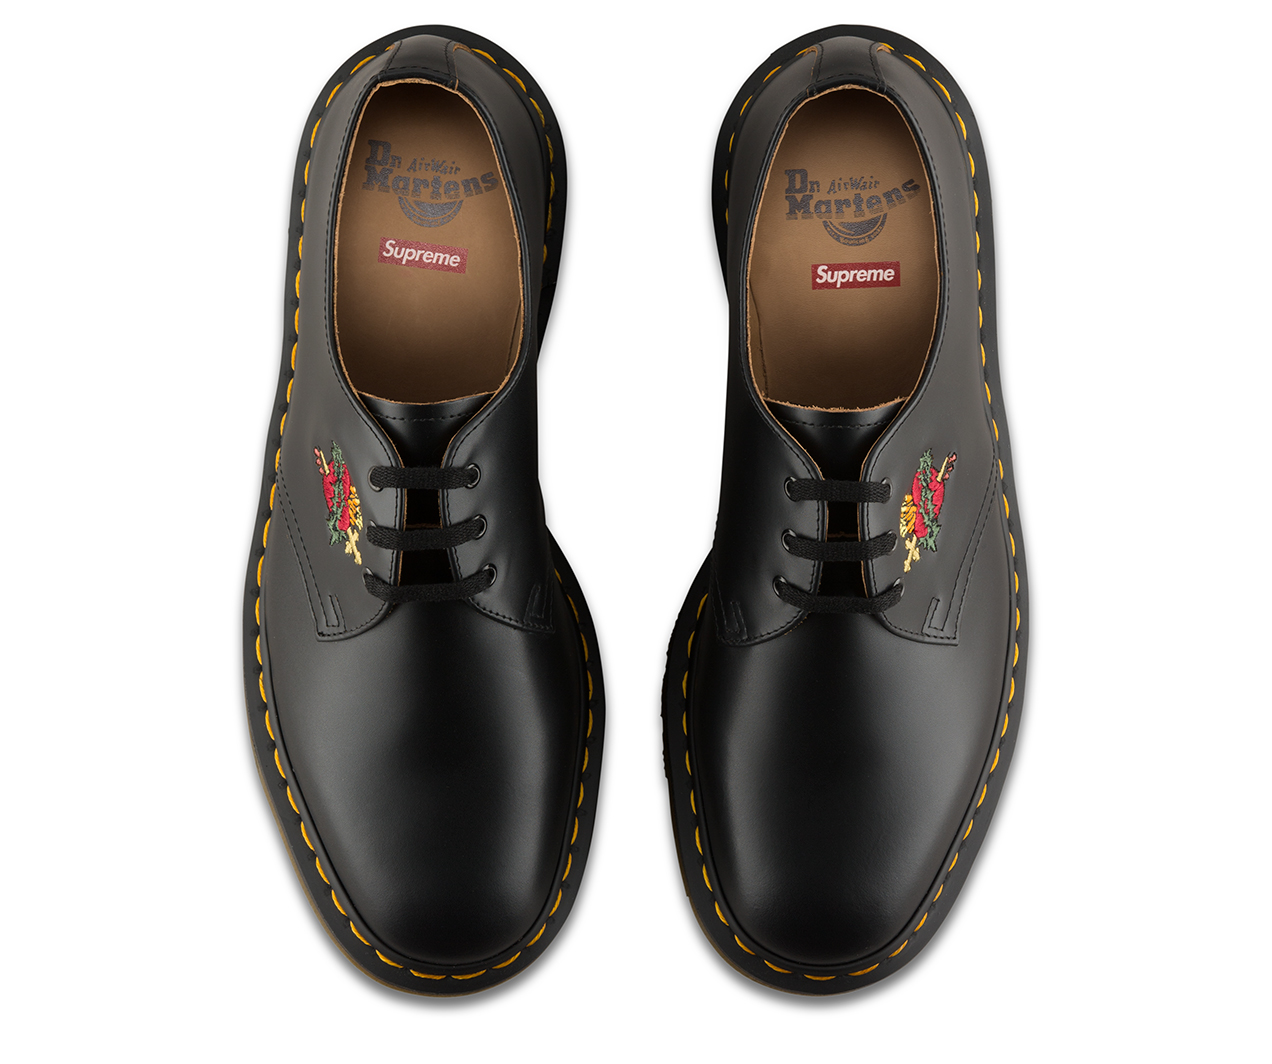 DR. MARTENS X SUPREME COLLABORATION Dr. Martens Blog